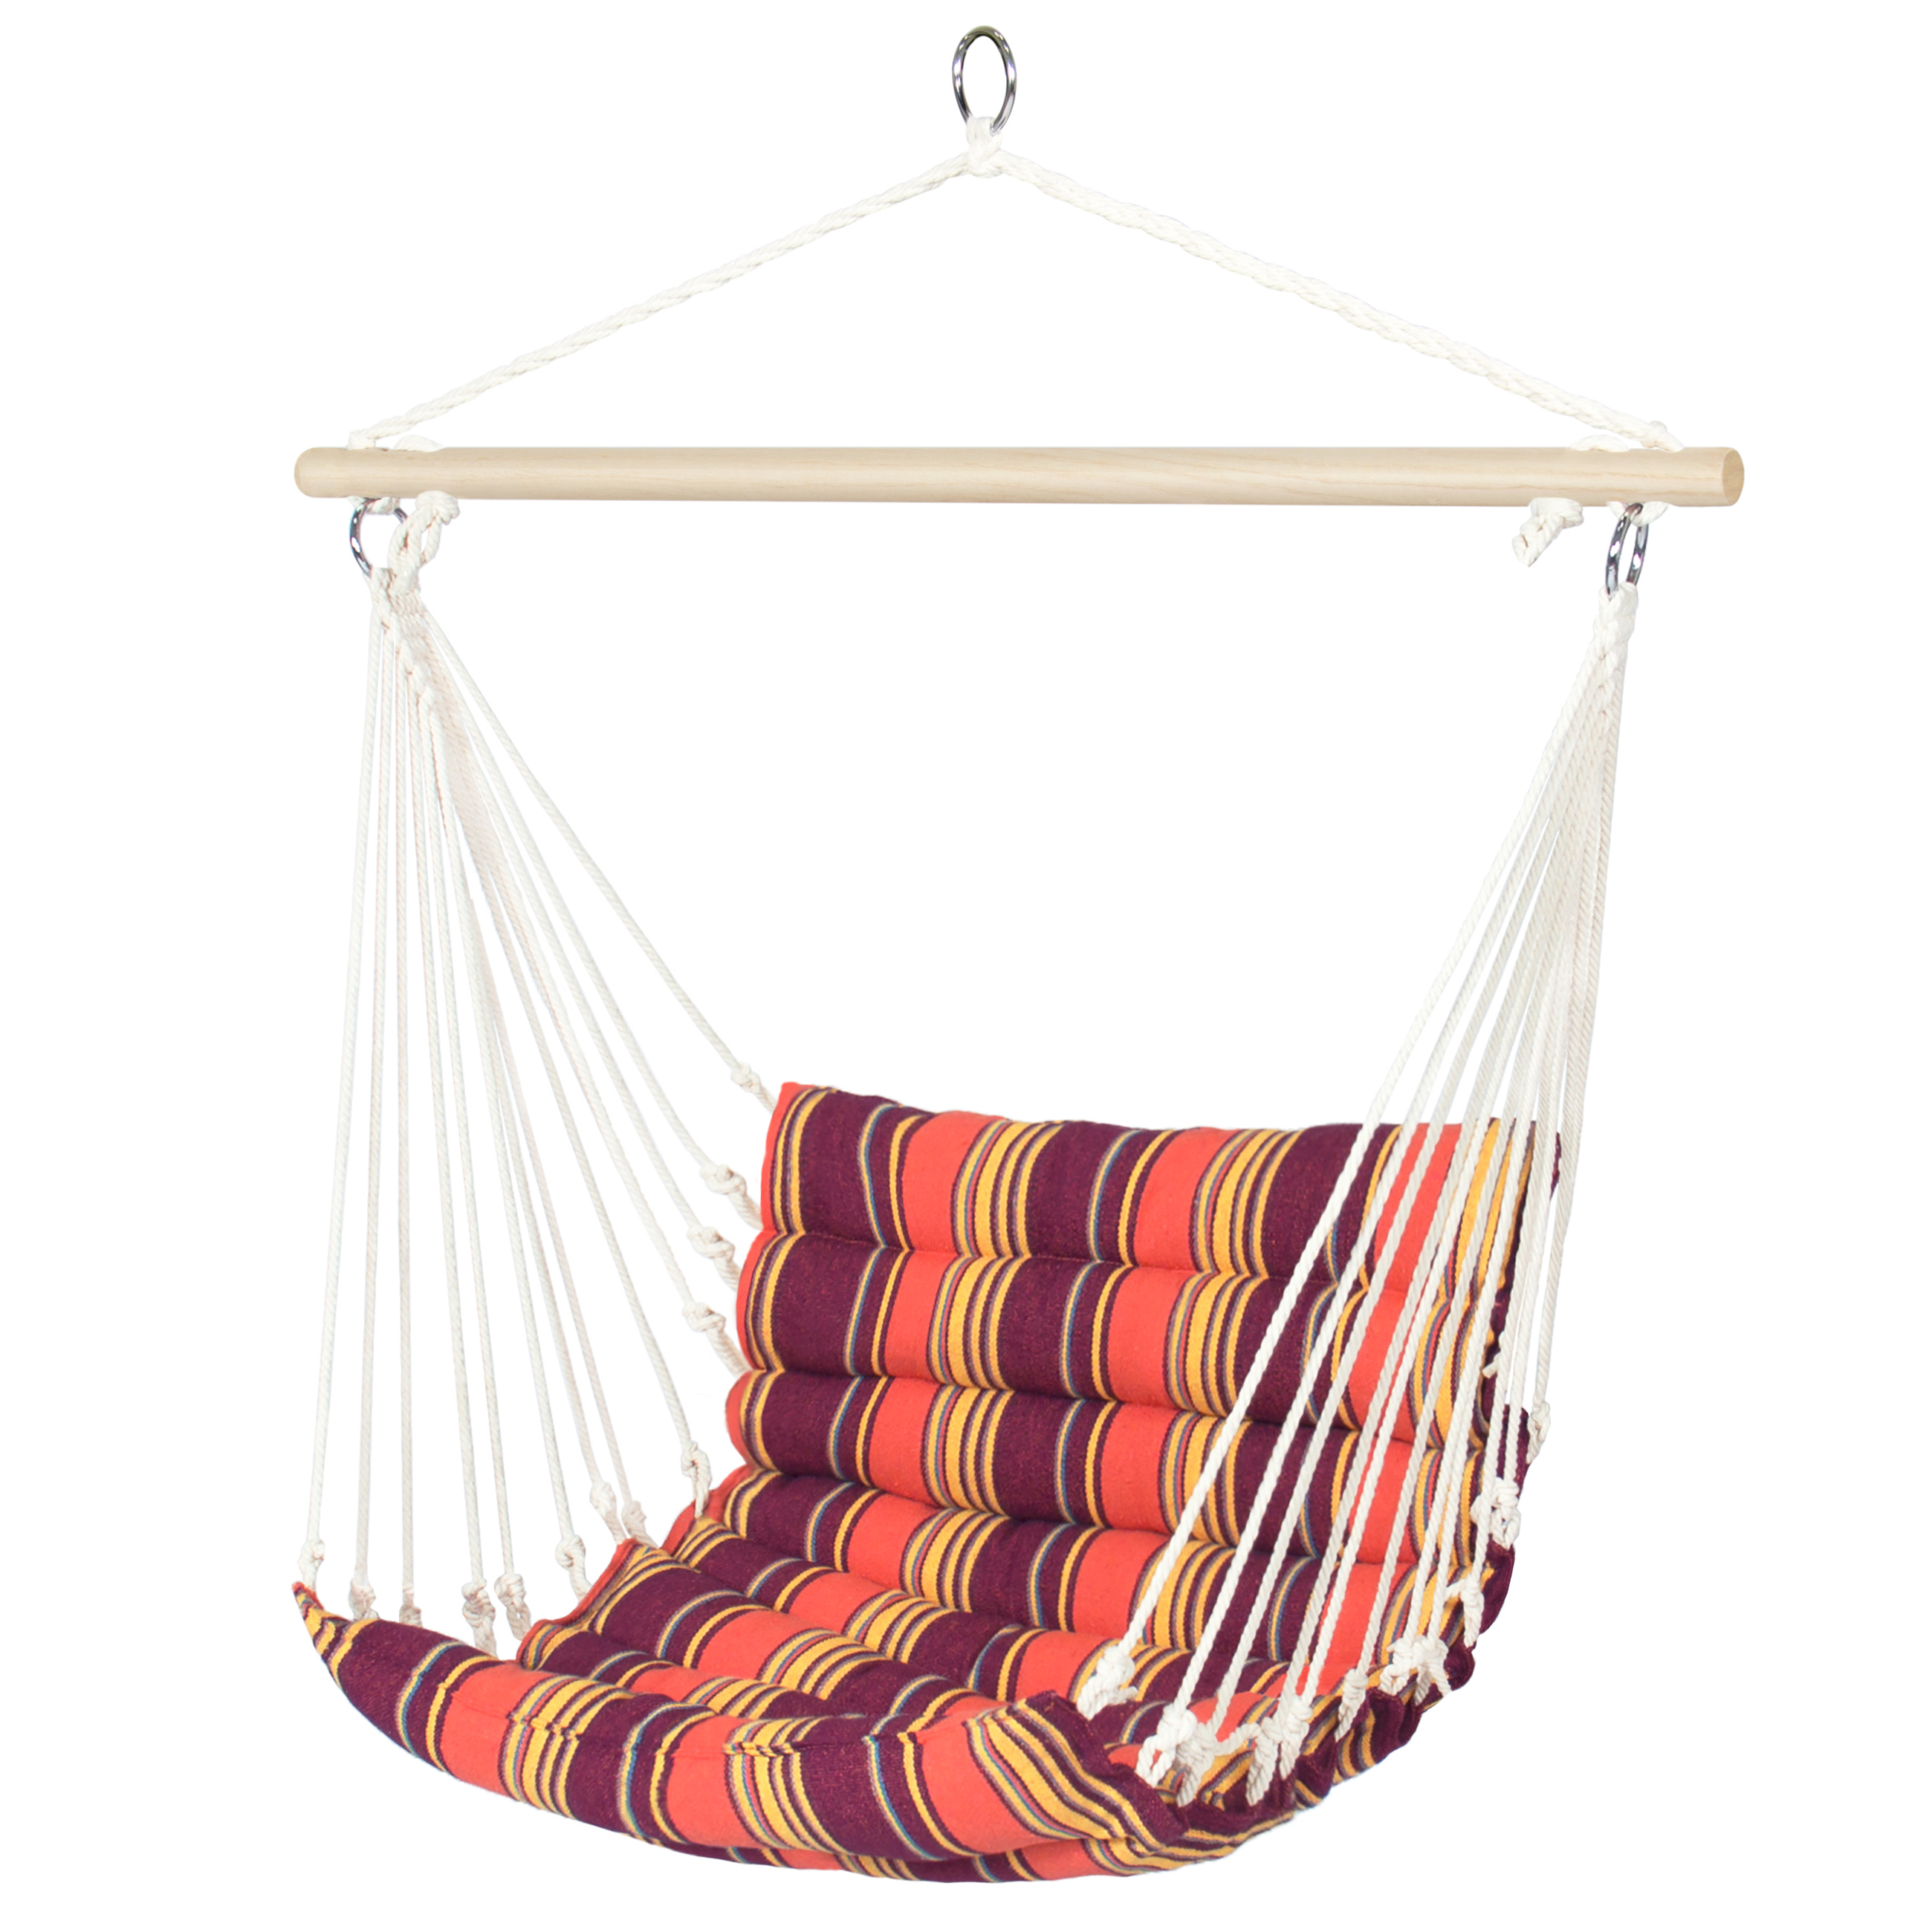 Best Choice Products Deluxe Padded Cotton Hammock Hanging Chair Indoor Outdoor Use- Blue